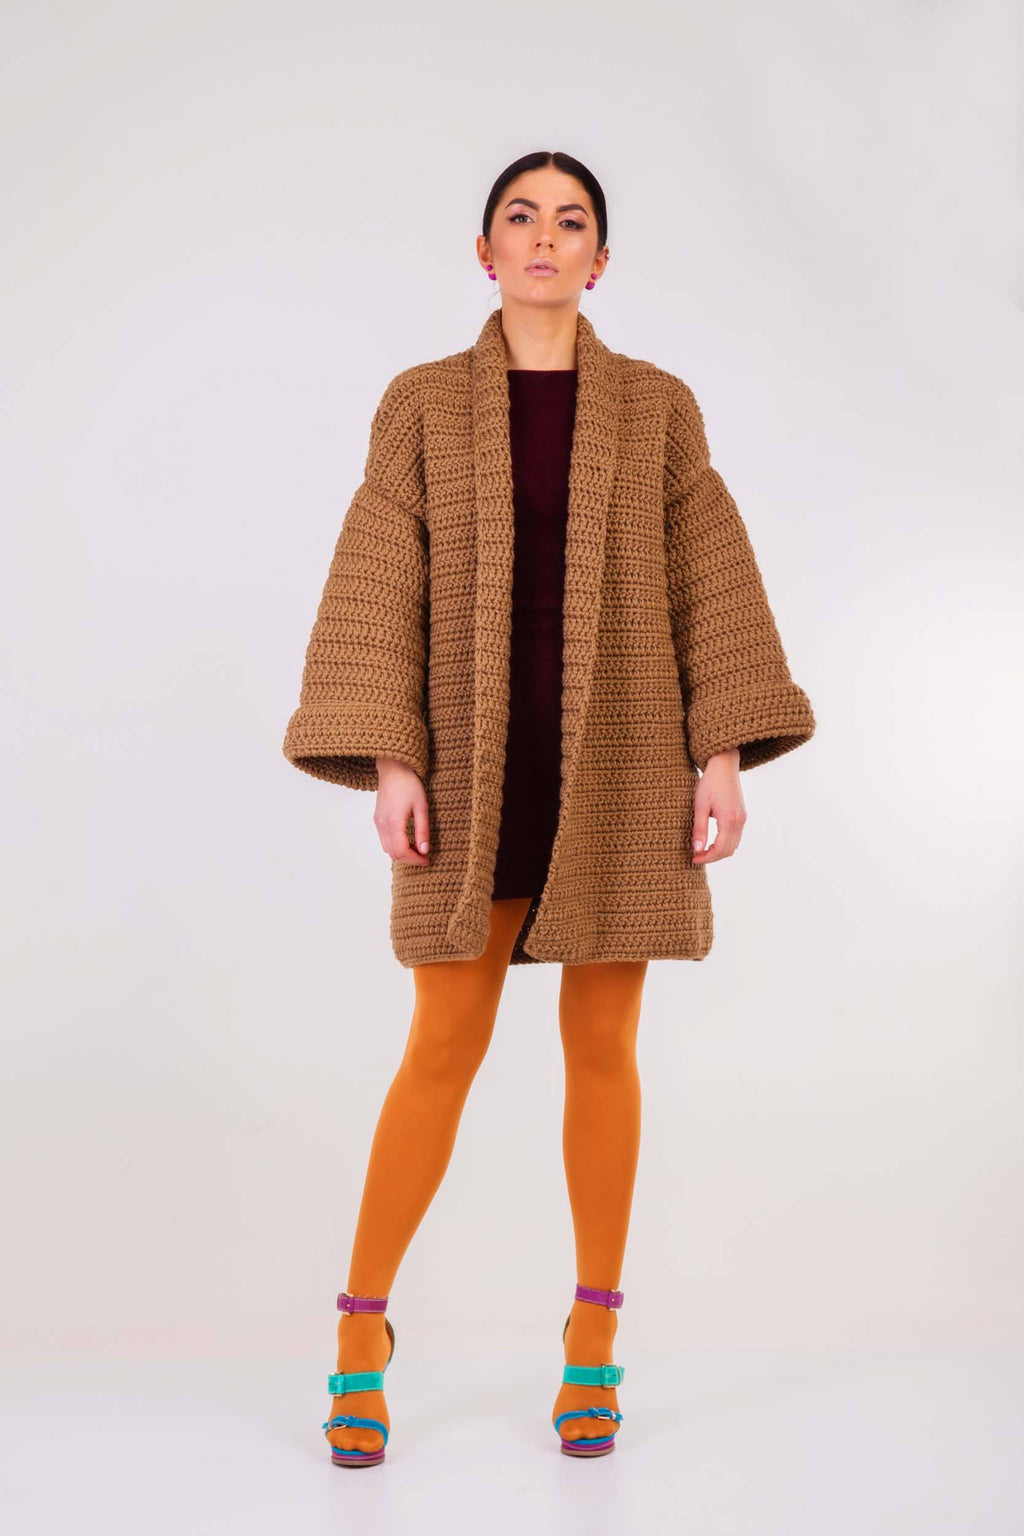 Chunky crochet cardigan  Dark beige cardigan Slouchy spring coat knitted coat - Lena Felice